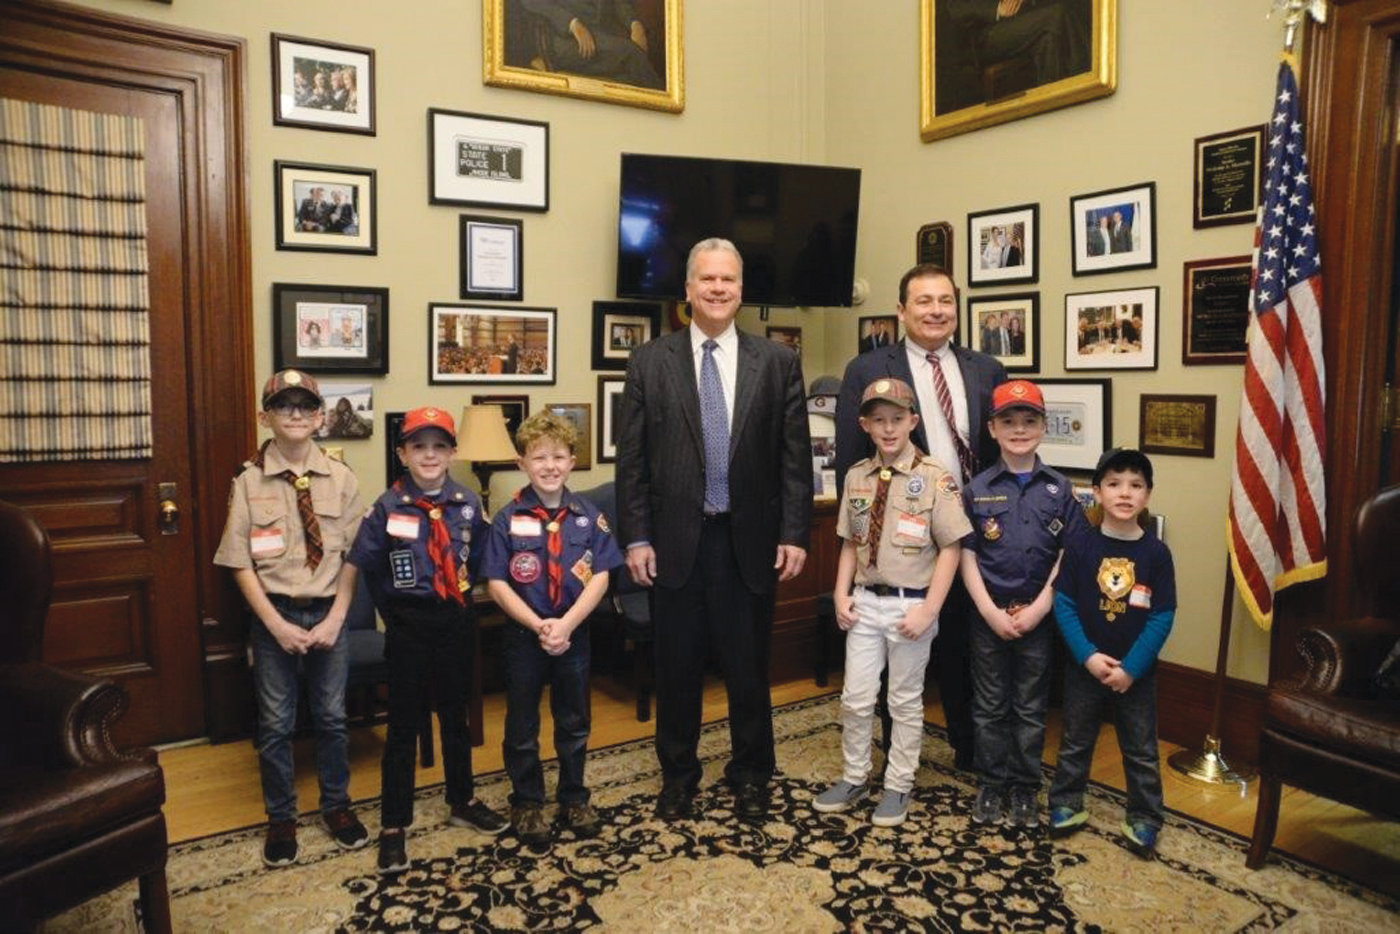 SCOUT'S HONOR: Speaker Nicholas Mattiello and Majority Leader Joseph Shekarchi with pictured with members of Pack 1 Warwick and Pack 6 Cranston.